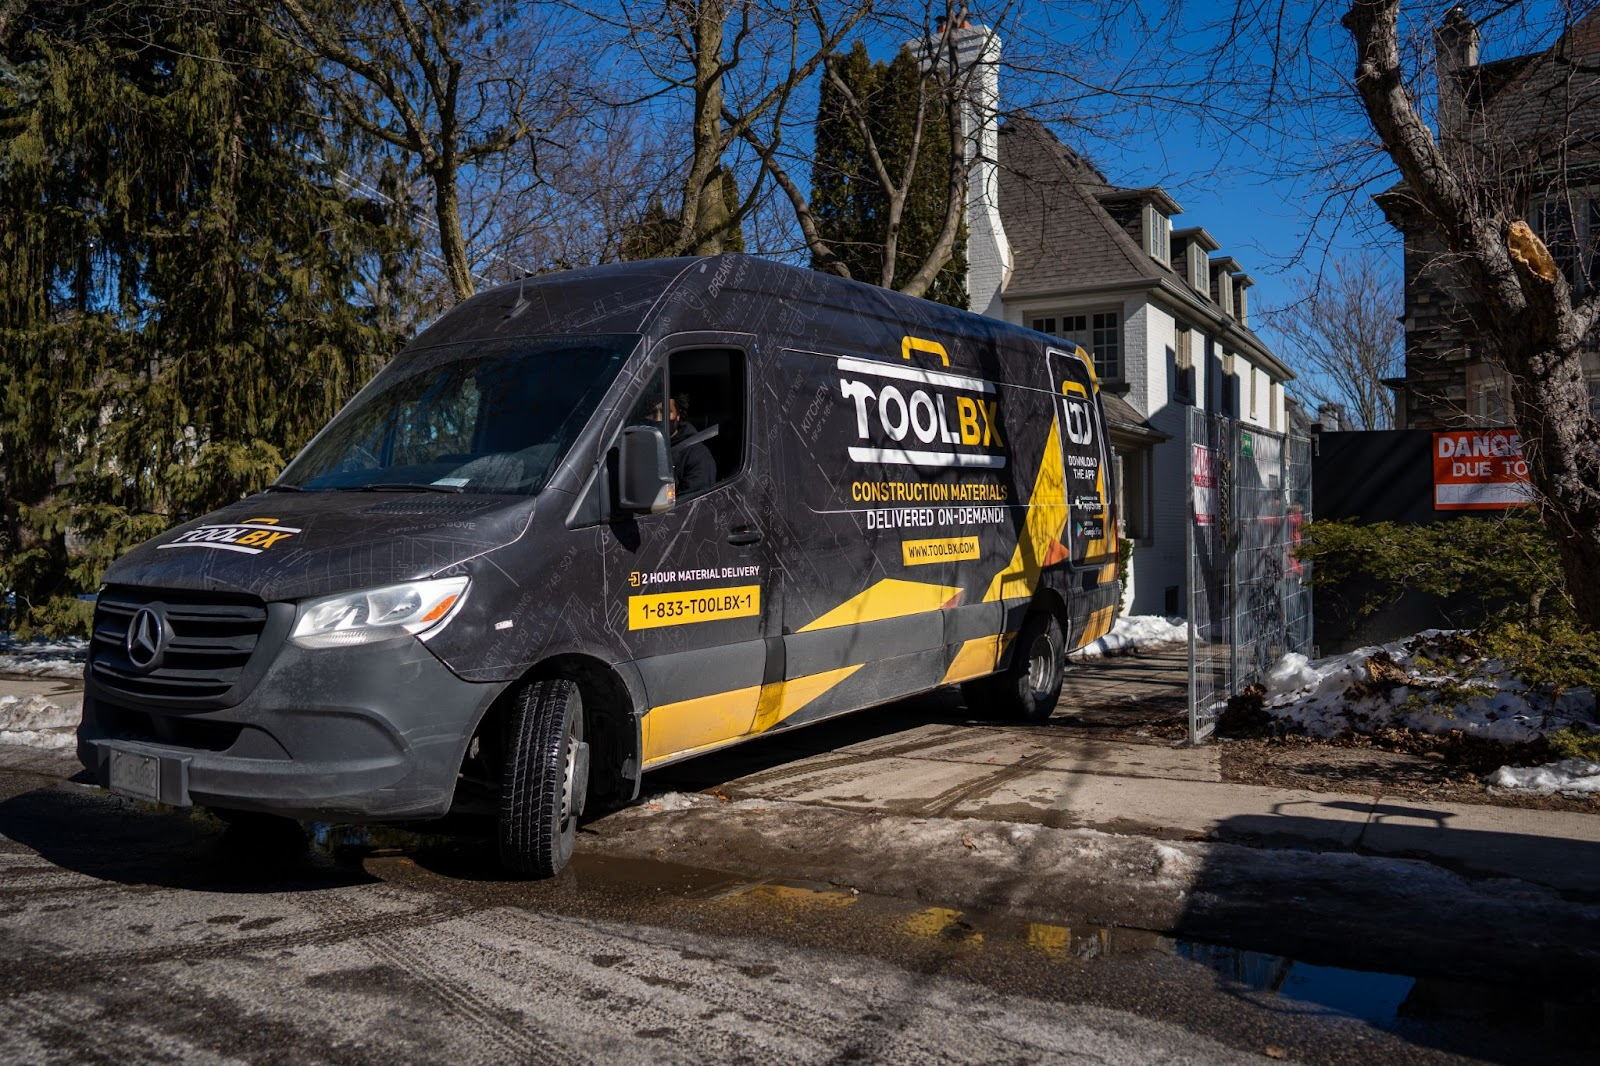 TOOLBX truck makes deliveries to you